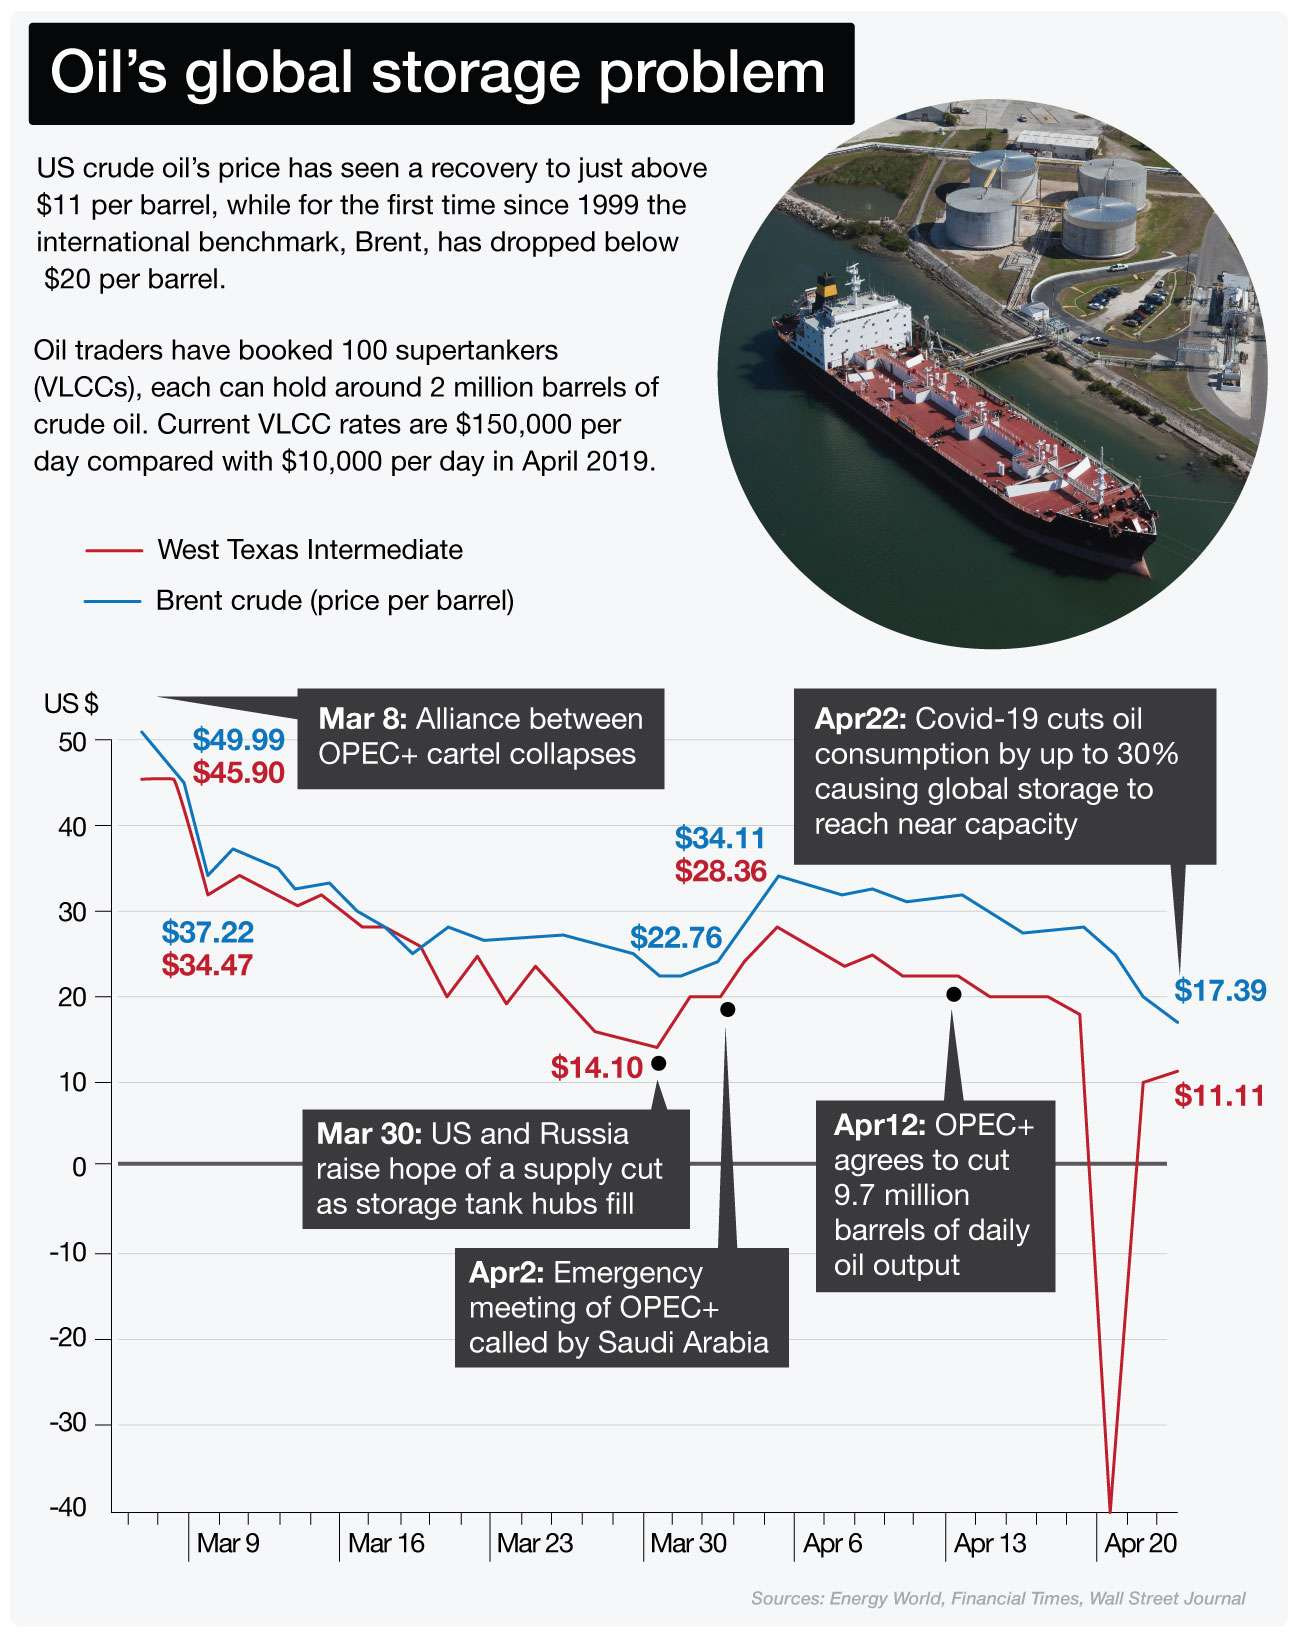 NED-1591-Oil's global storage problem - 0